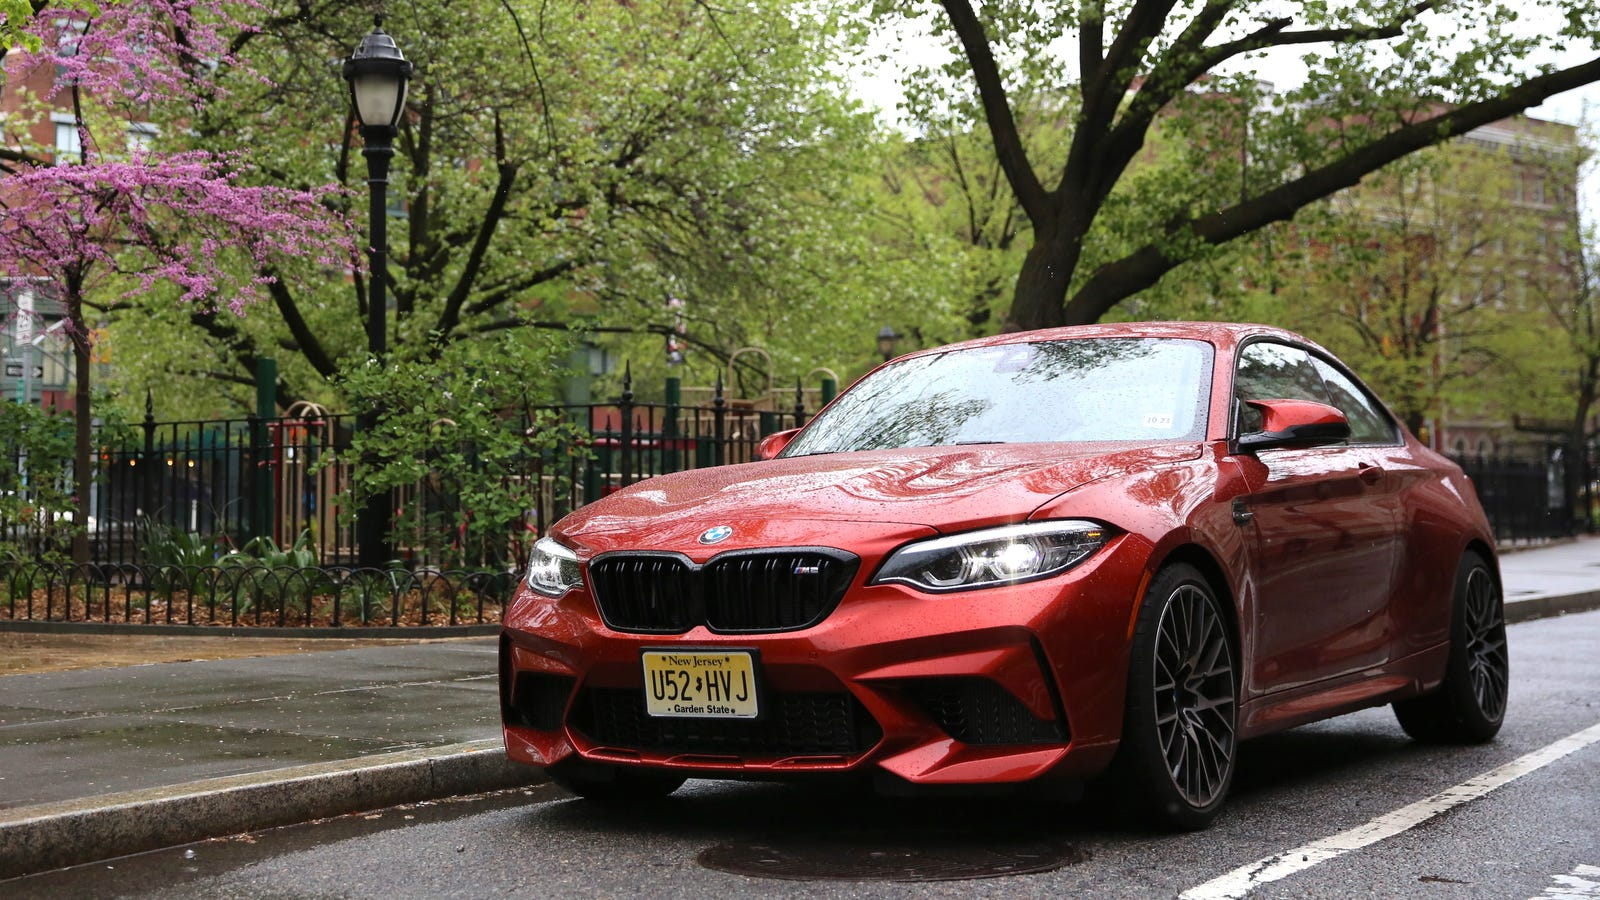 What Do You Want To Know About The 2020 BMW M2 Competition?